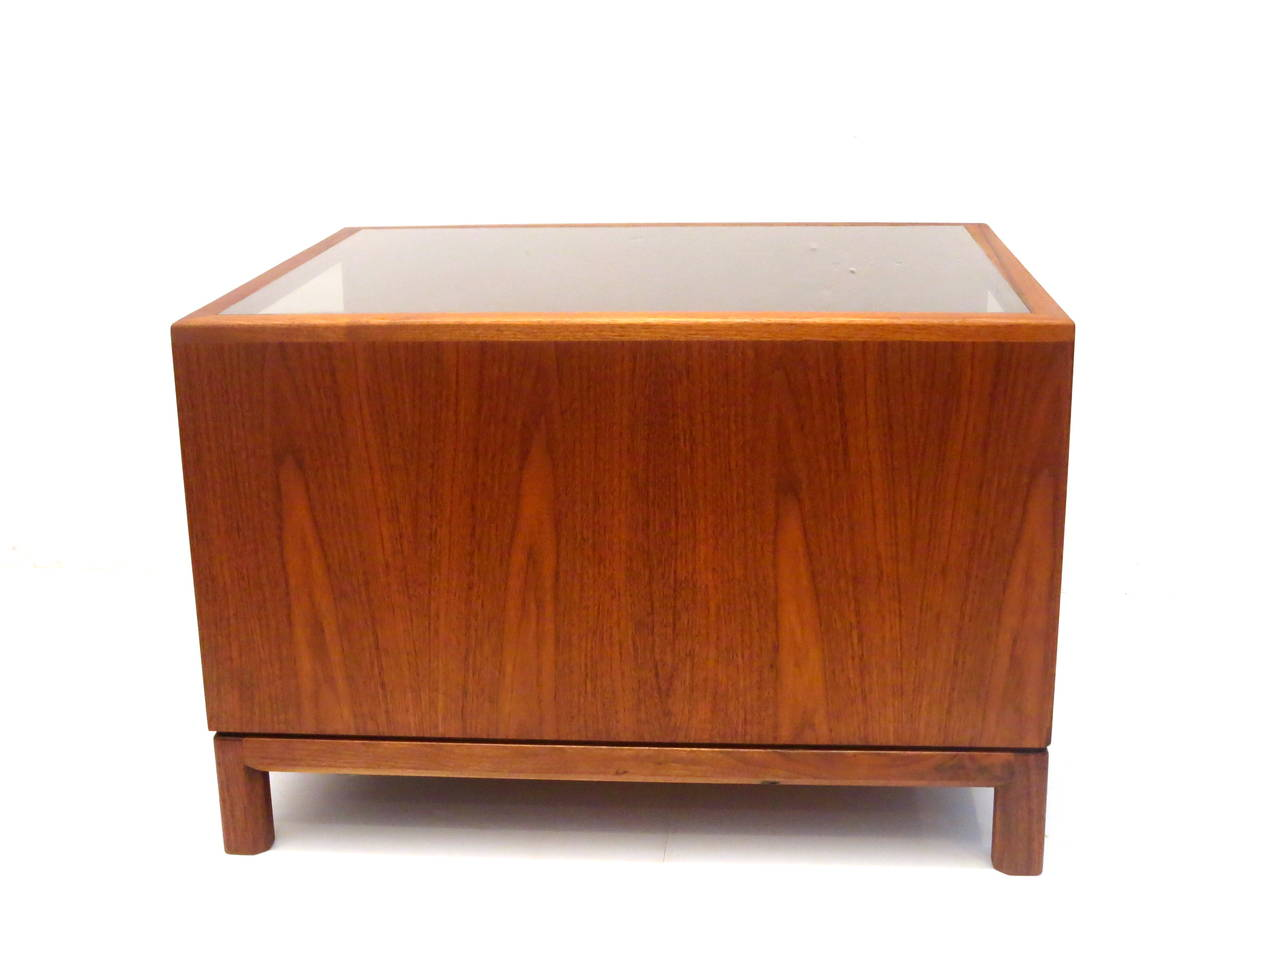 American Modern Walnut Large Cocktail Table With Smoked Glass California Design At 1stdibs